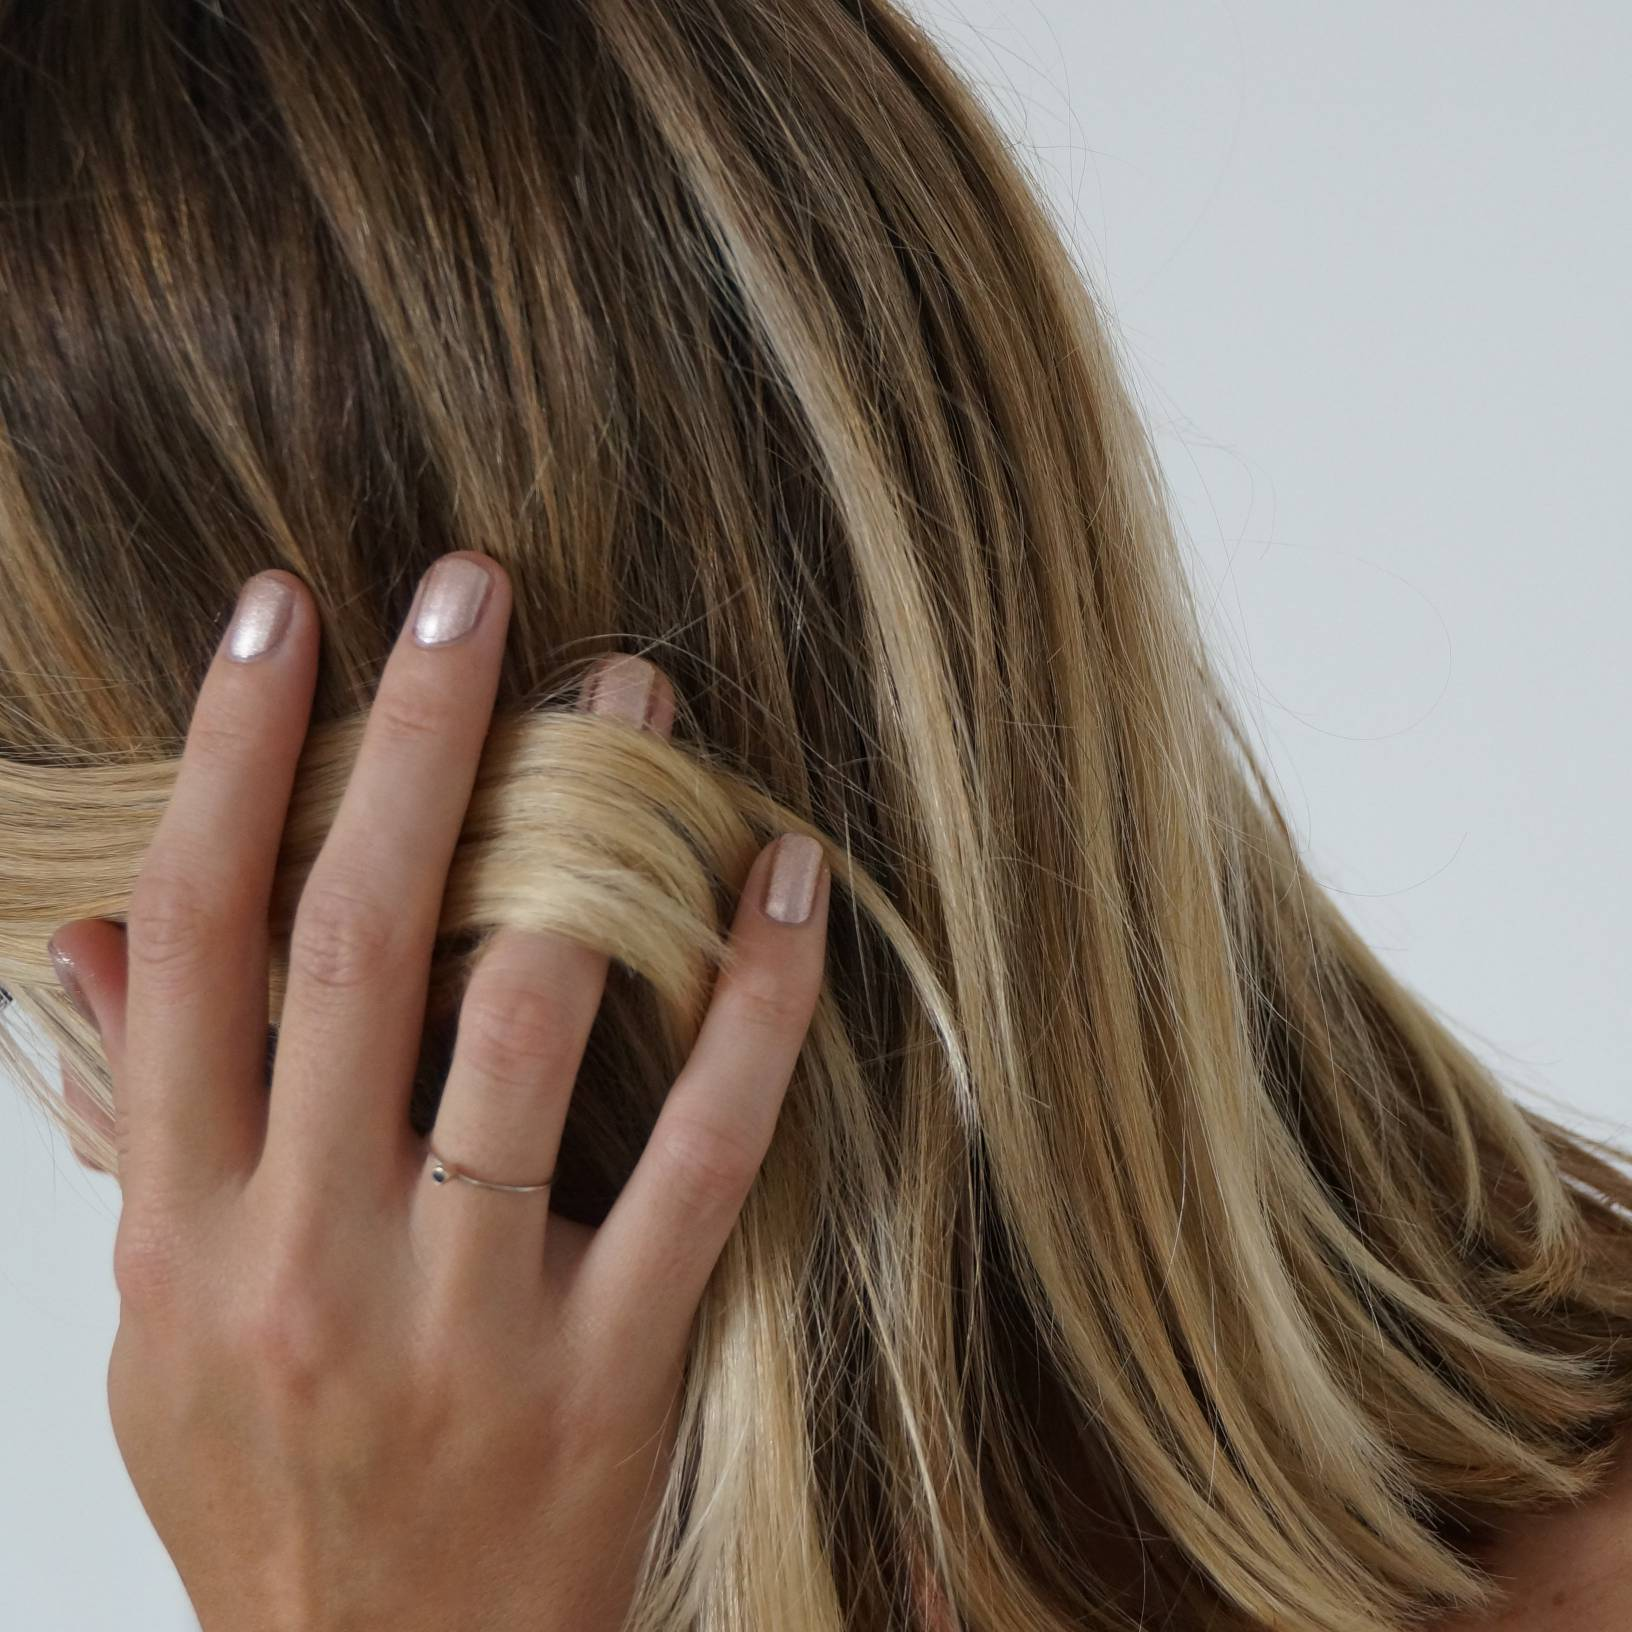 A female side on view holding a lock of hair whilst wearing Copper Blush nail polish, a metallic dark pink shade with gold undertones